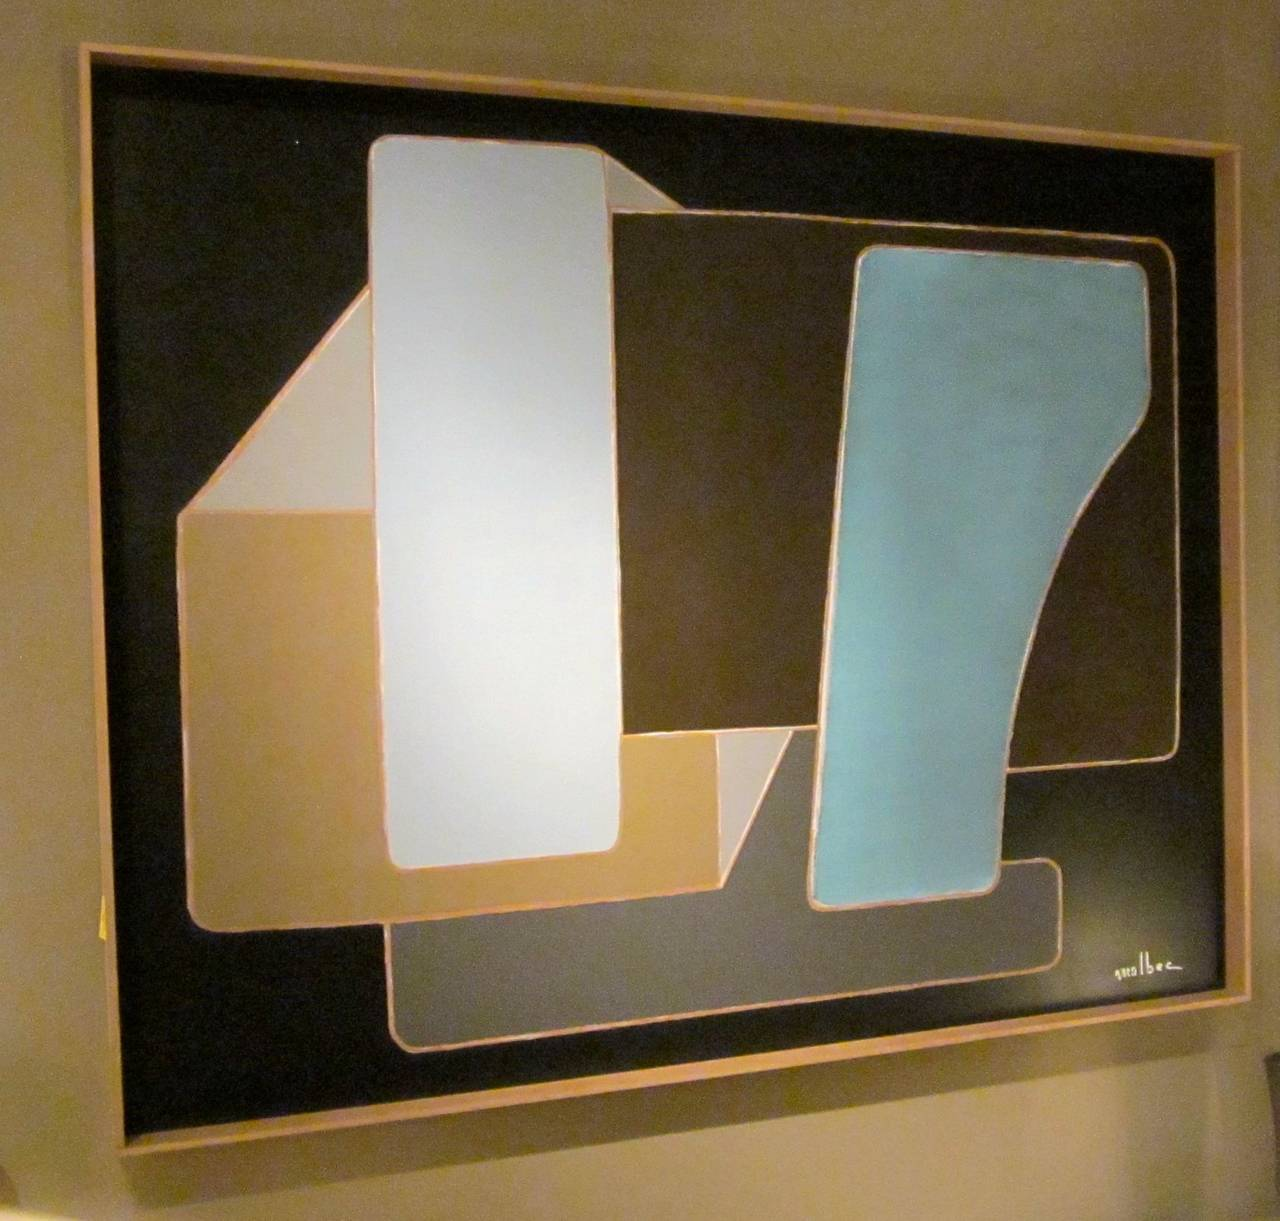 Large horizontal abstract painting, black ground with grey/brown/tan and light blue by contemporary French artist Pierre Malbec.